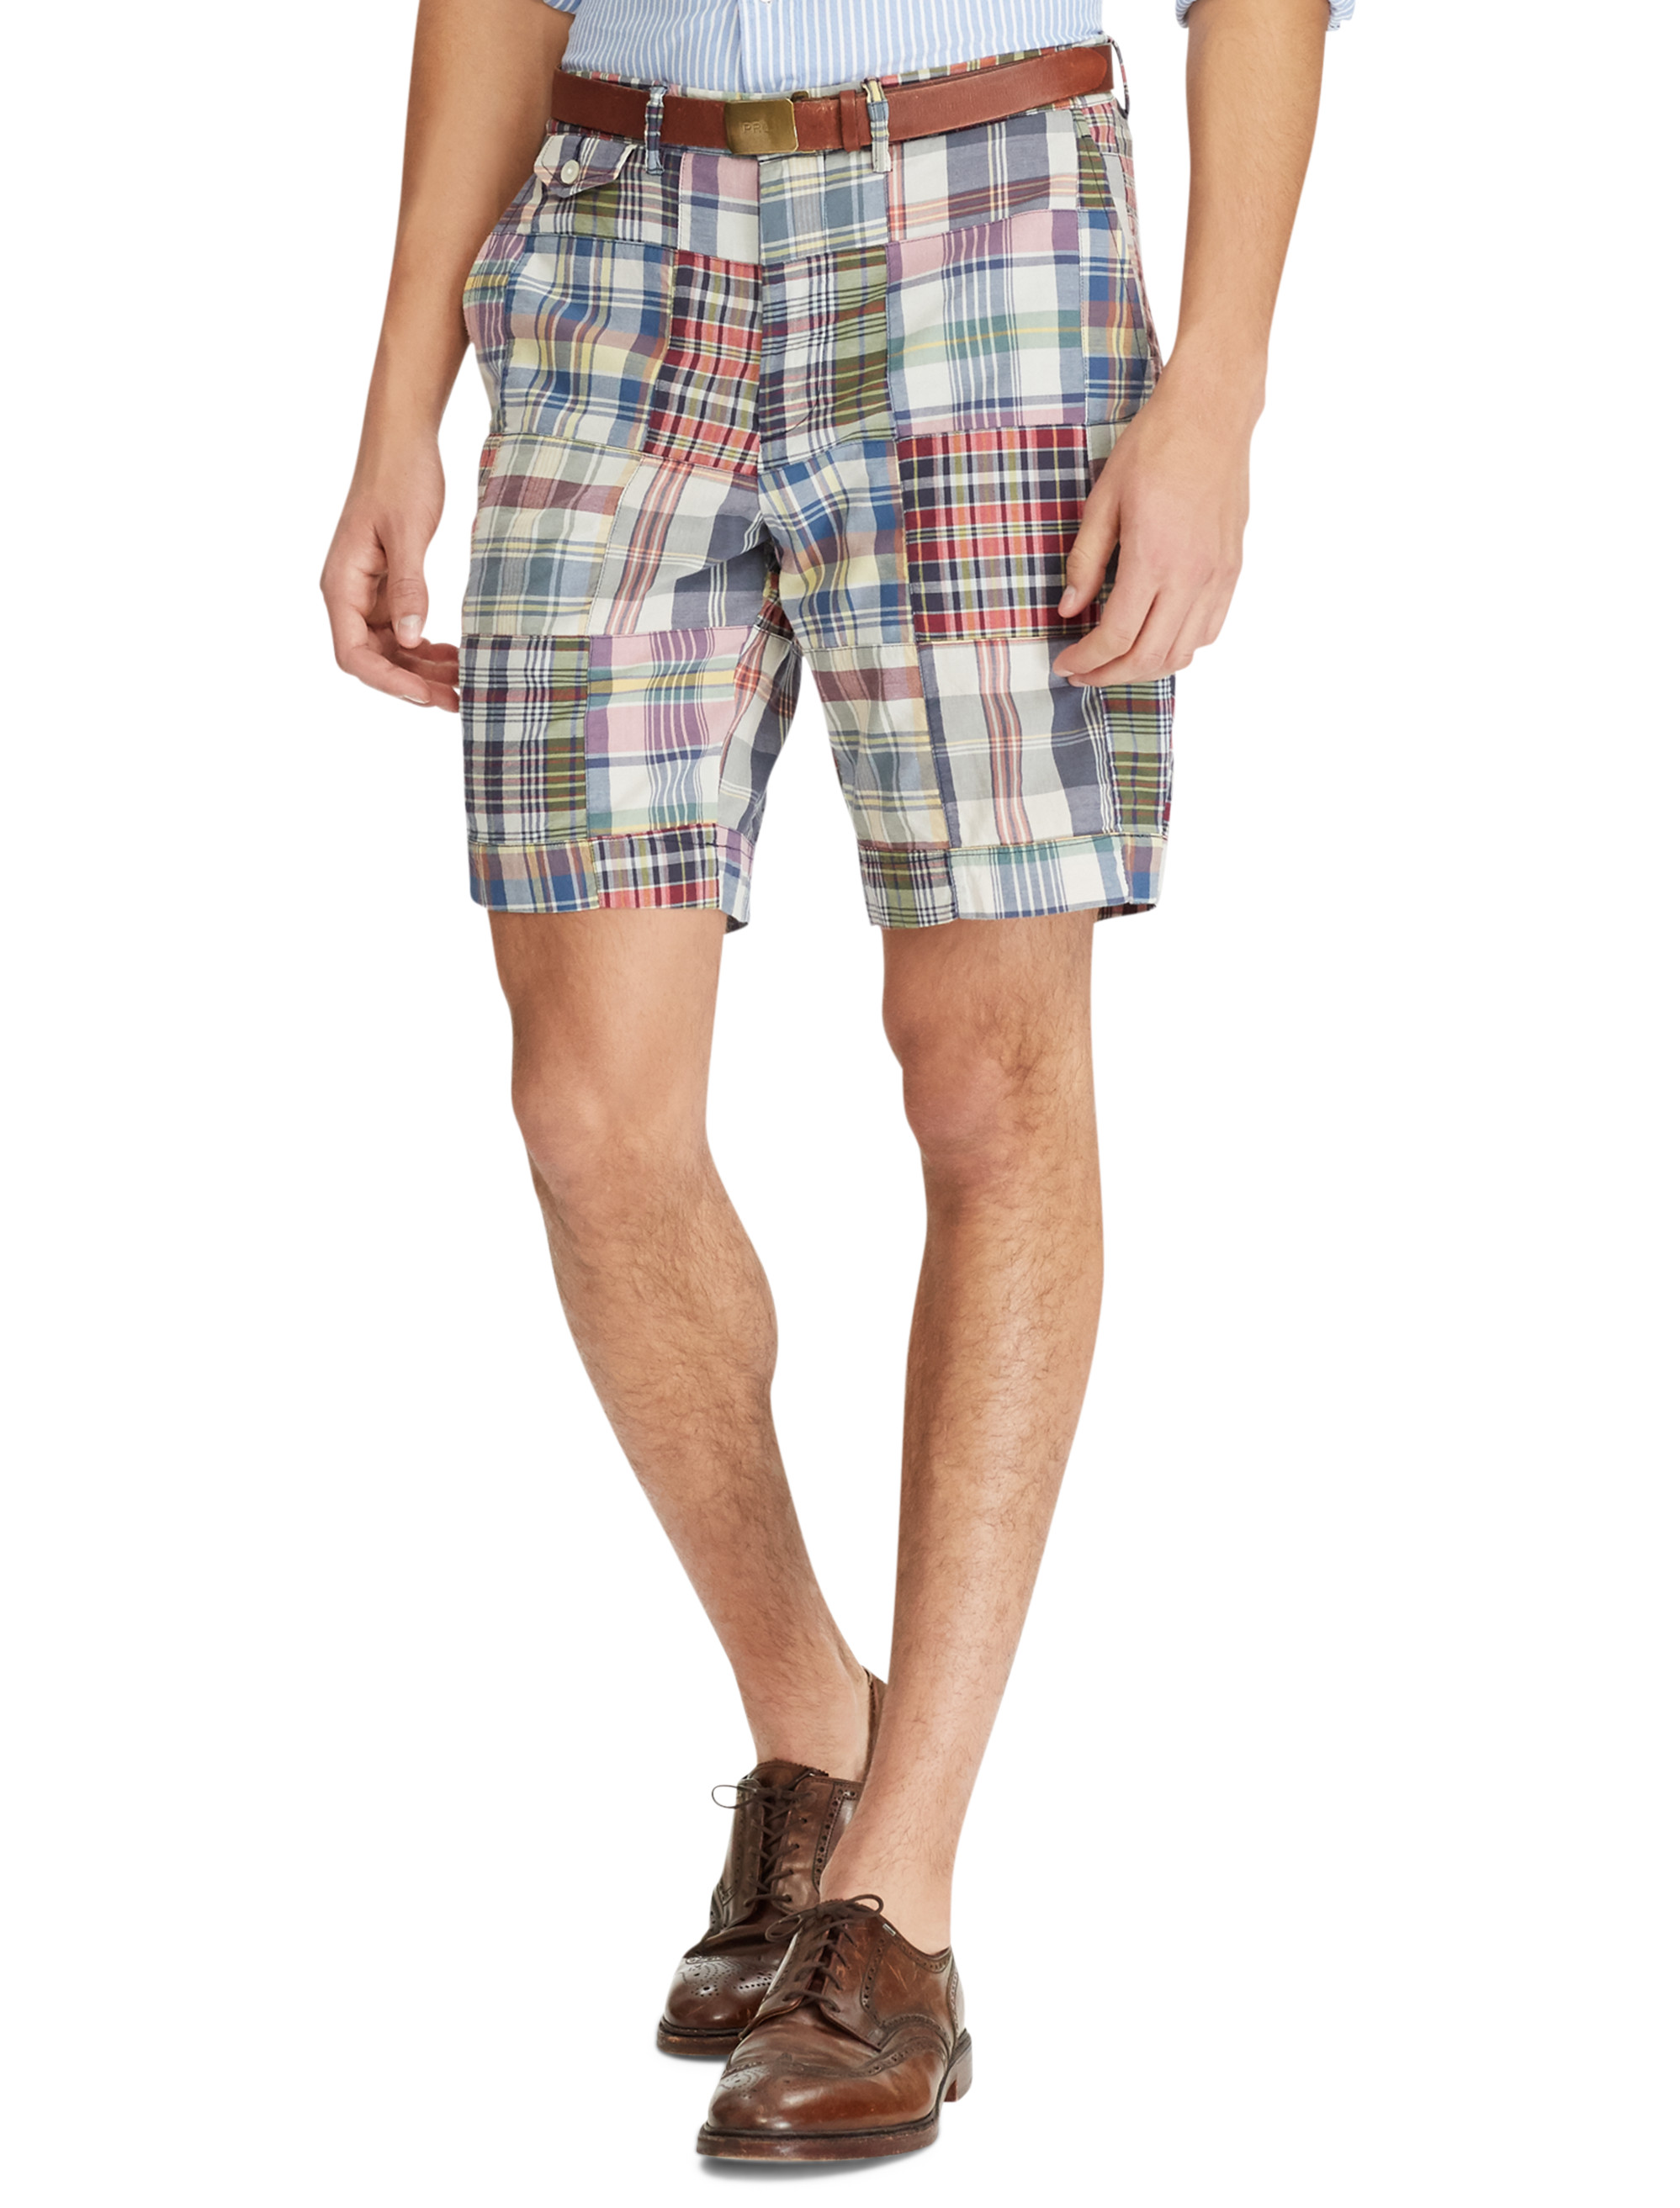 b146b8a713 Shorts and Swim at Casual Male XL , Joliet   Tuggl - local retail ...